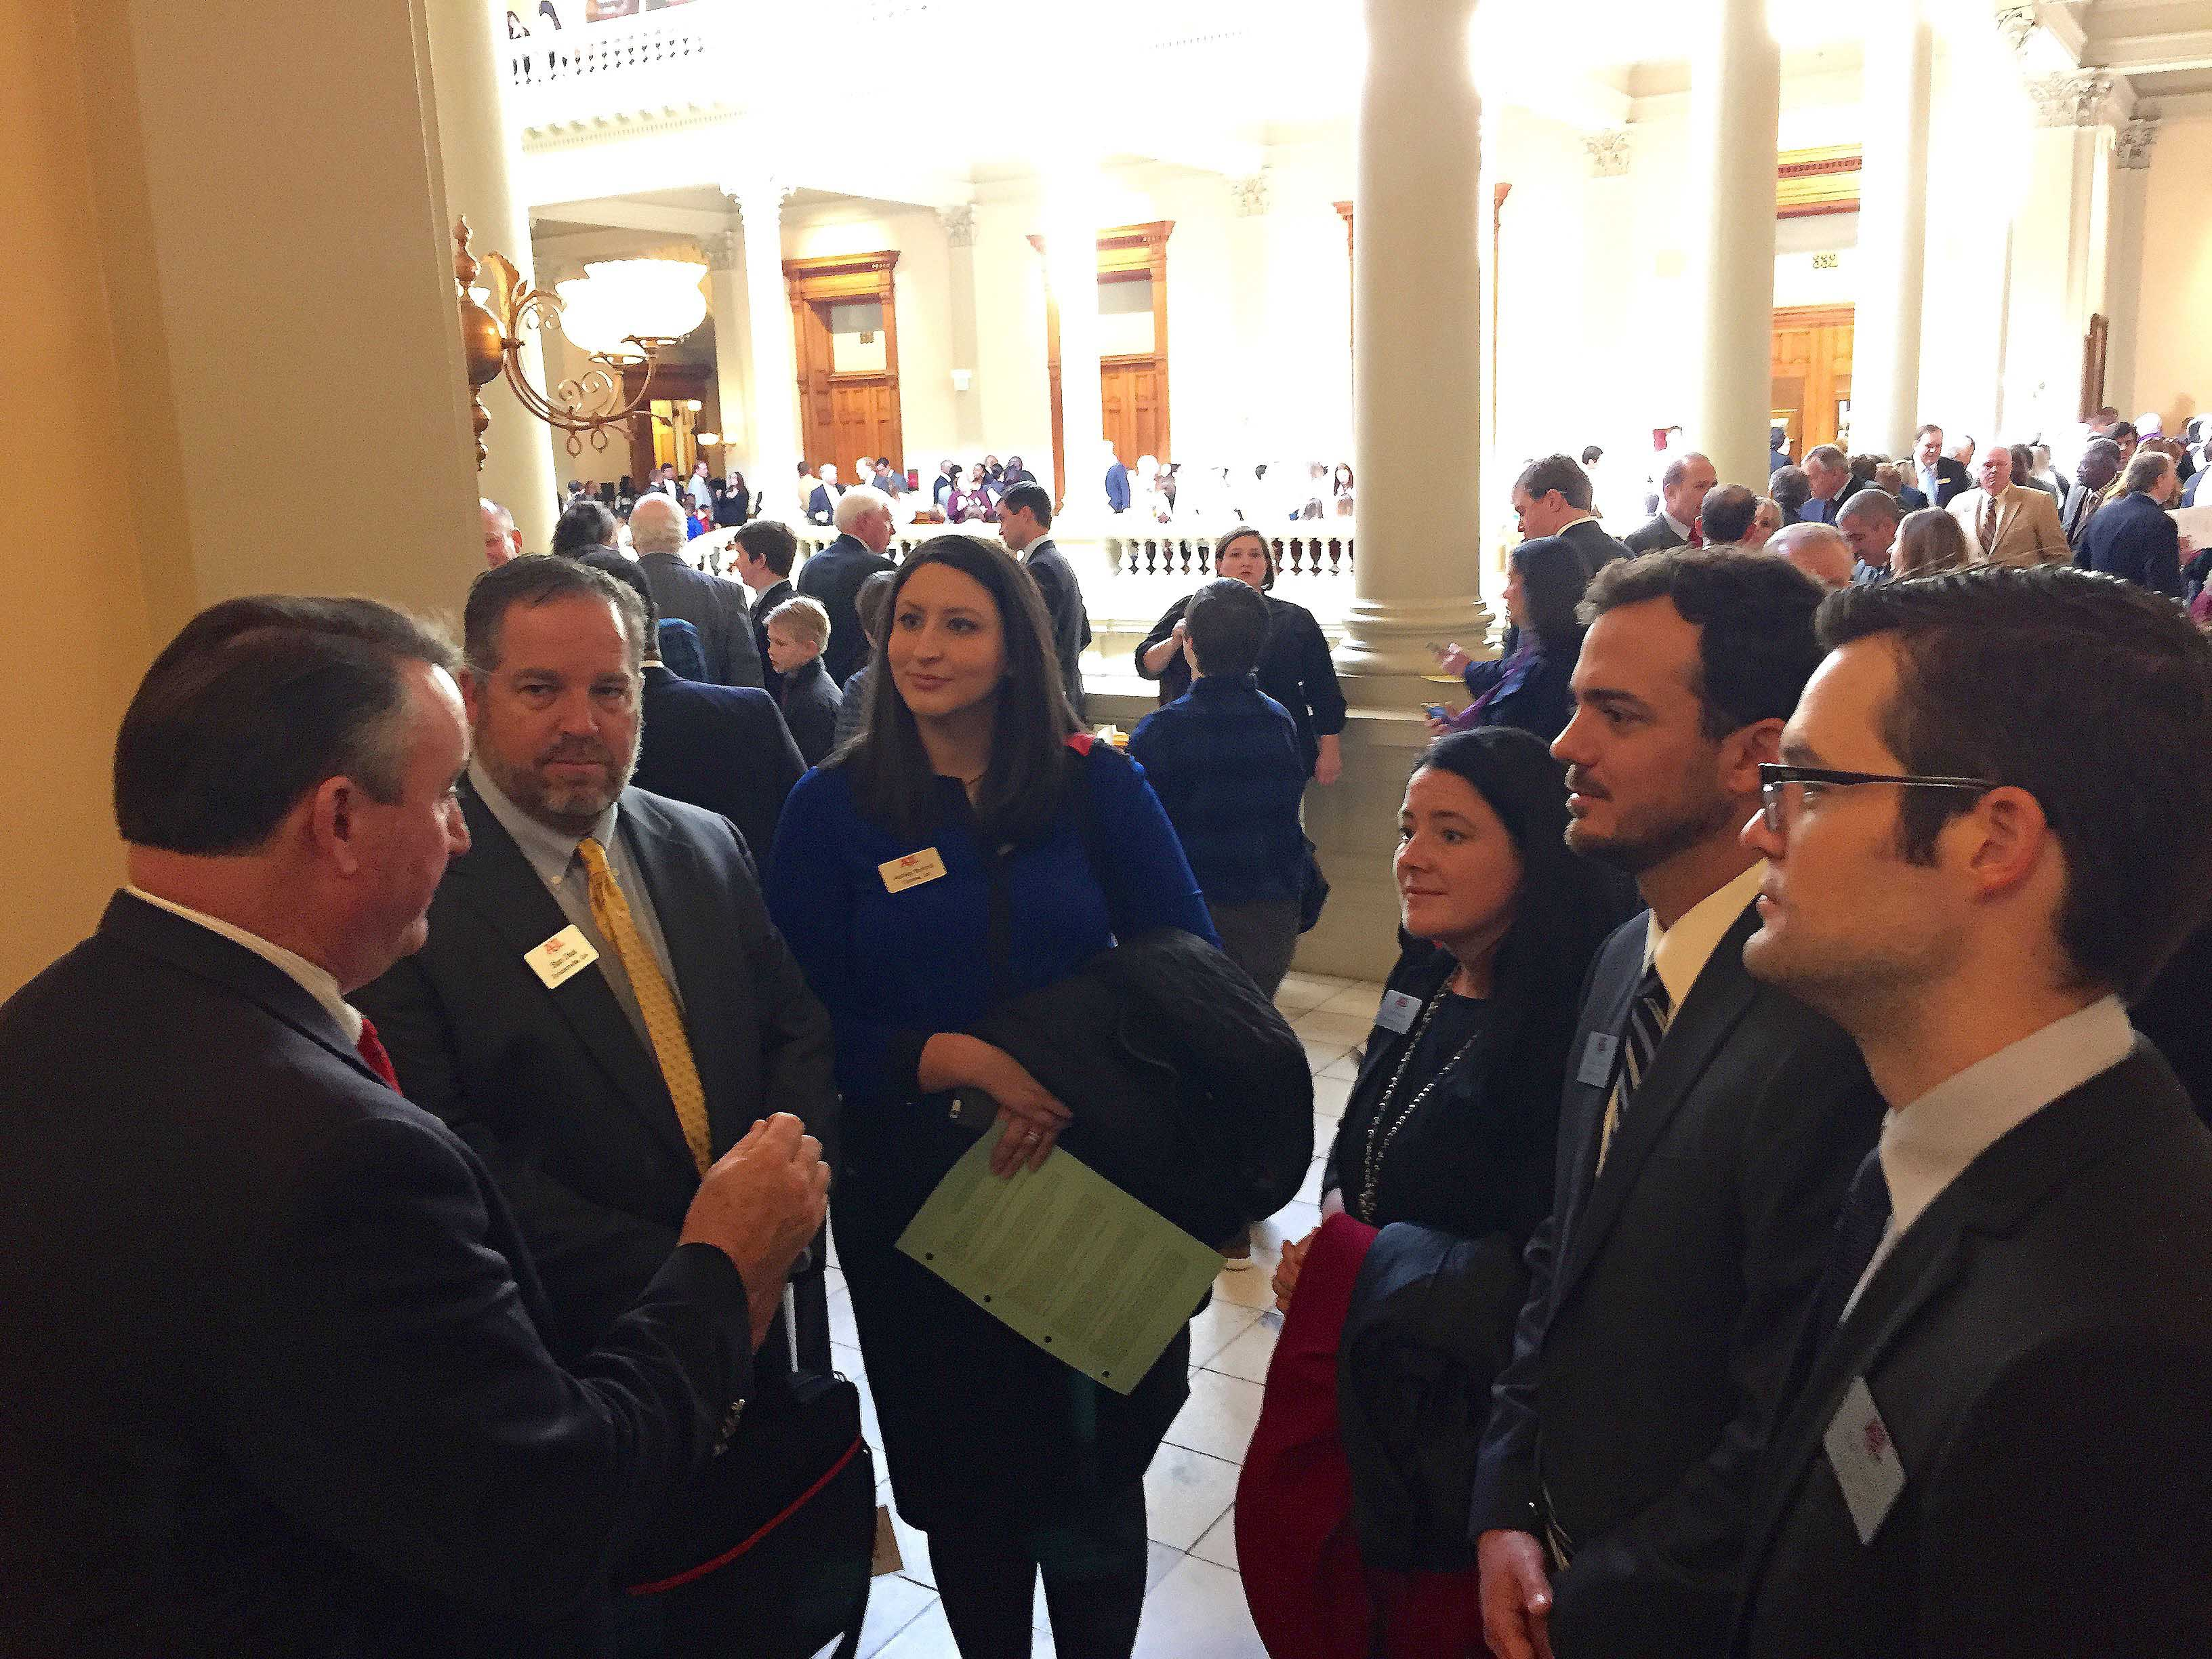 UGA AGL participants Stan Deal, Ashley Buford, Lanie Riner, Shane Boyer and Jeff Jordan visit with Georgia State Sen. Frank Gin, of Danielsville, Georgia.(Photo by Lauren Griffeth)